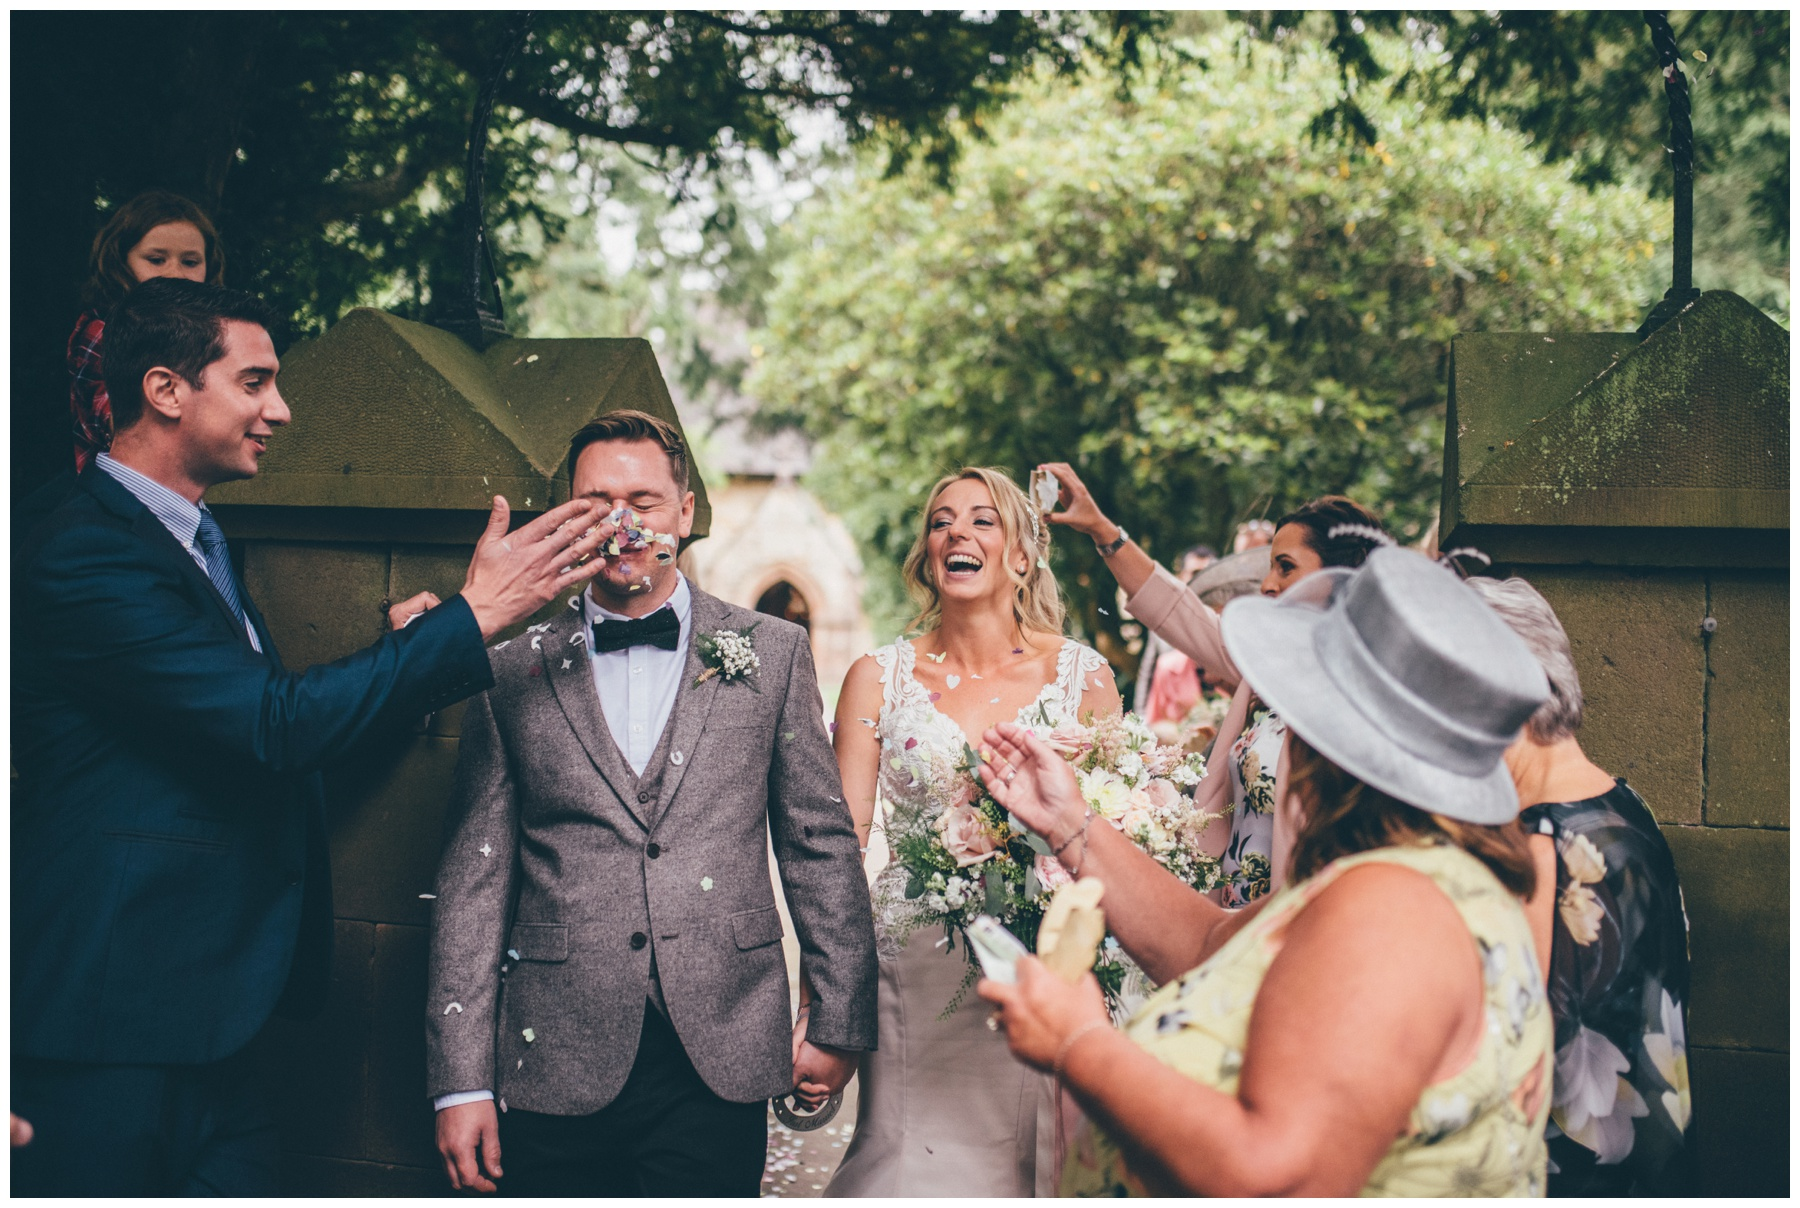 From gets confetti thrown in his face by one of the wedding guests at Staffordshire tipi wedding.